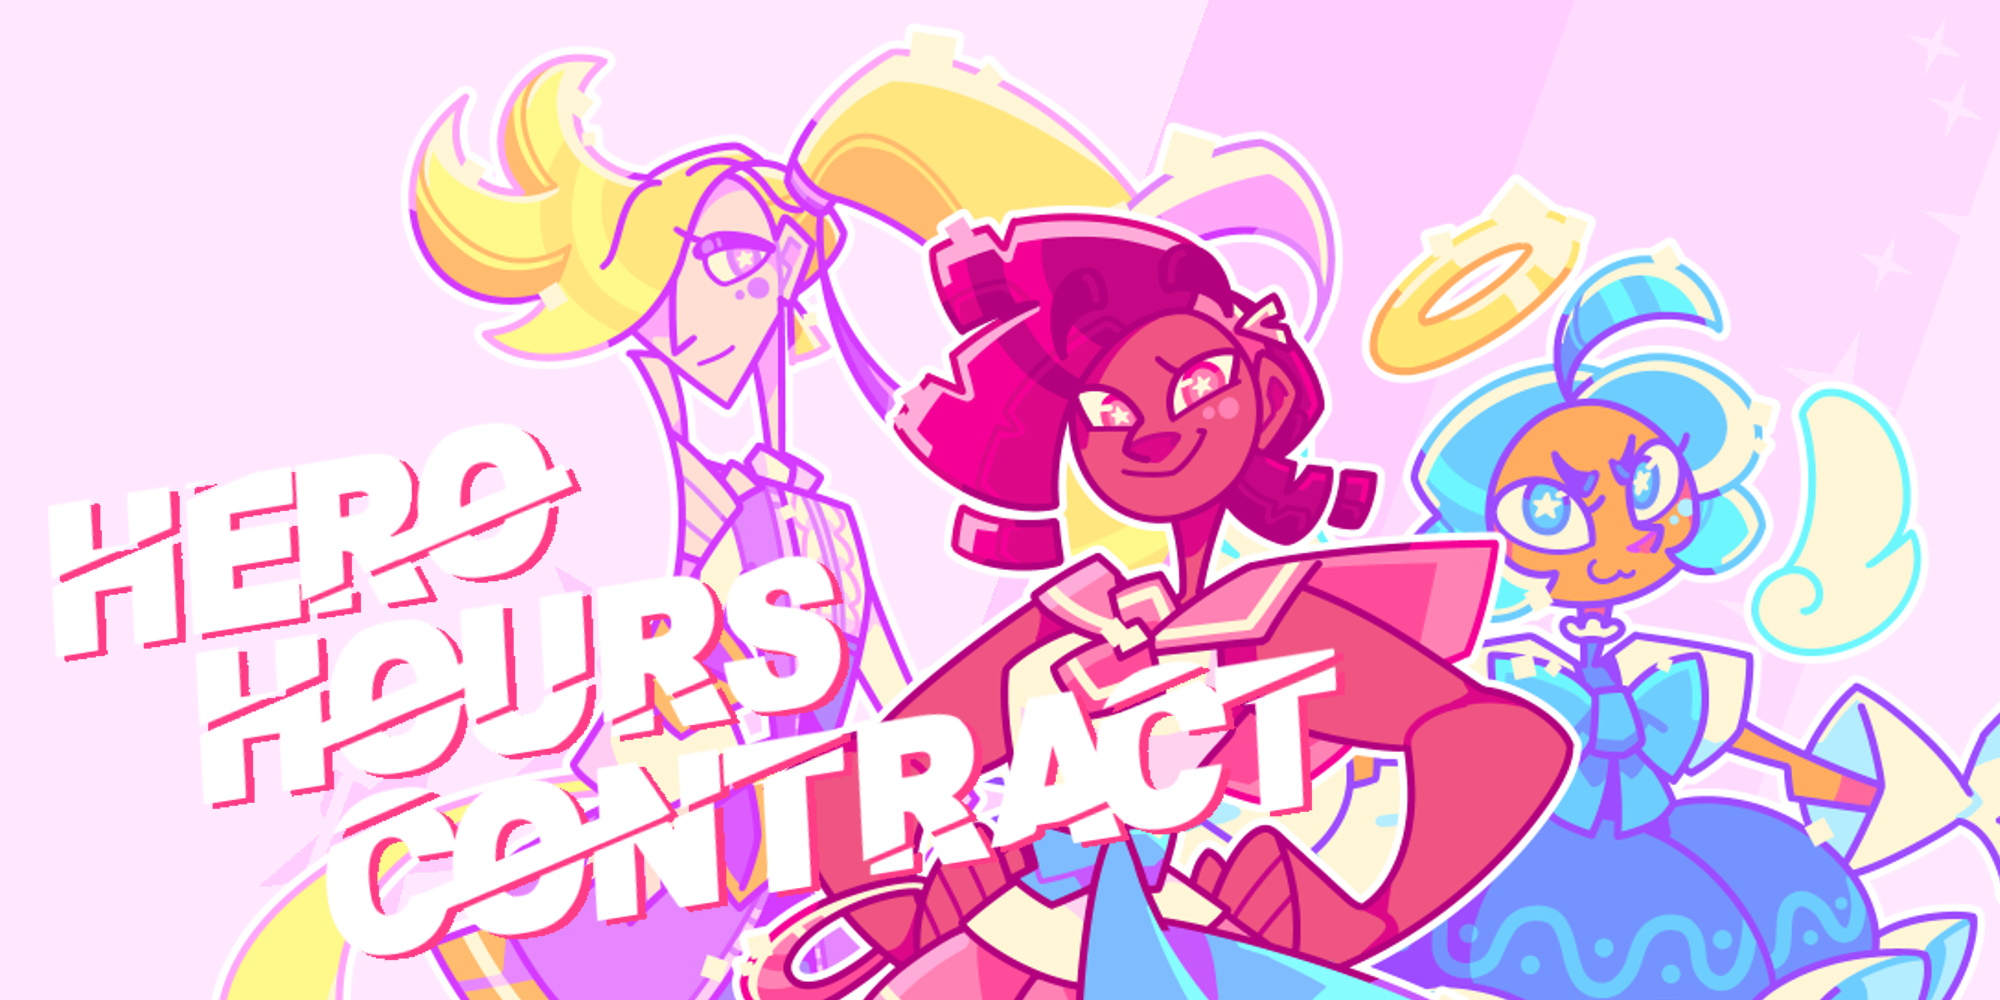 Hero Hours Contract Promotional Artwork